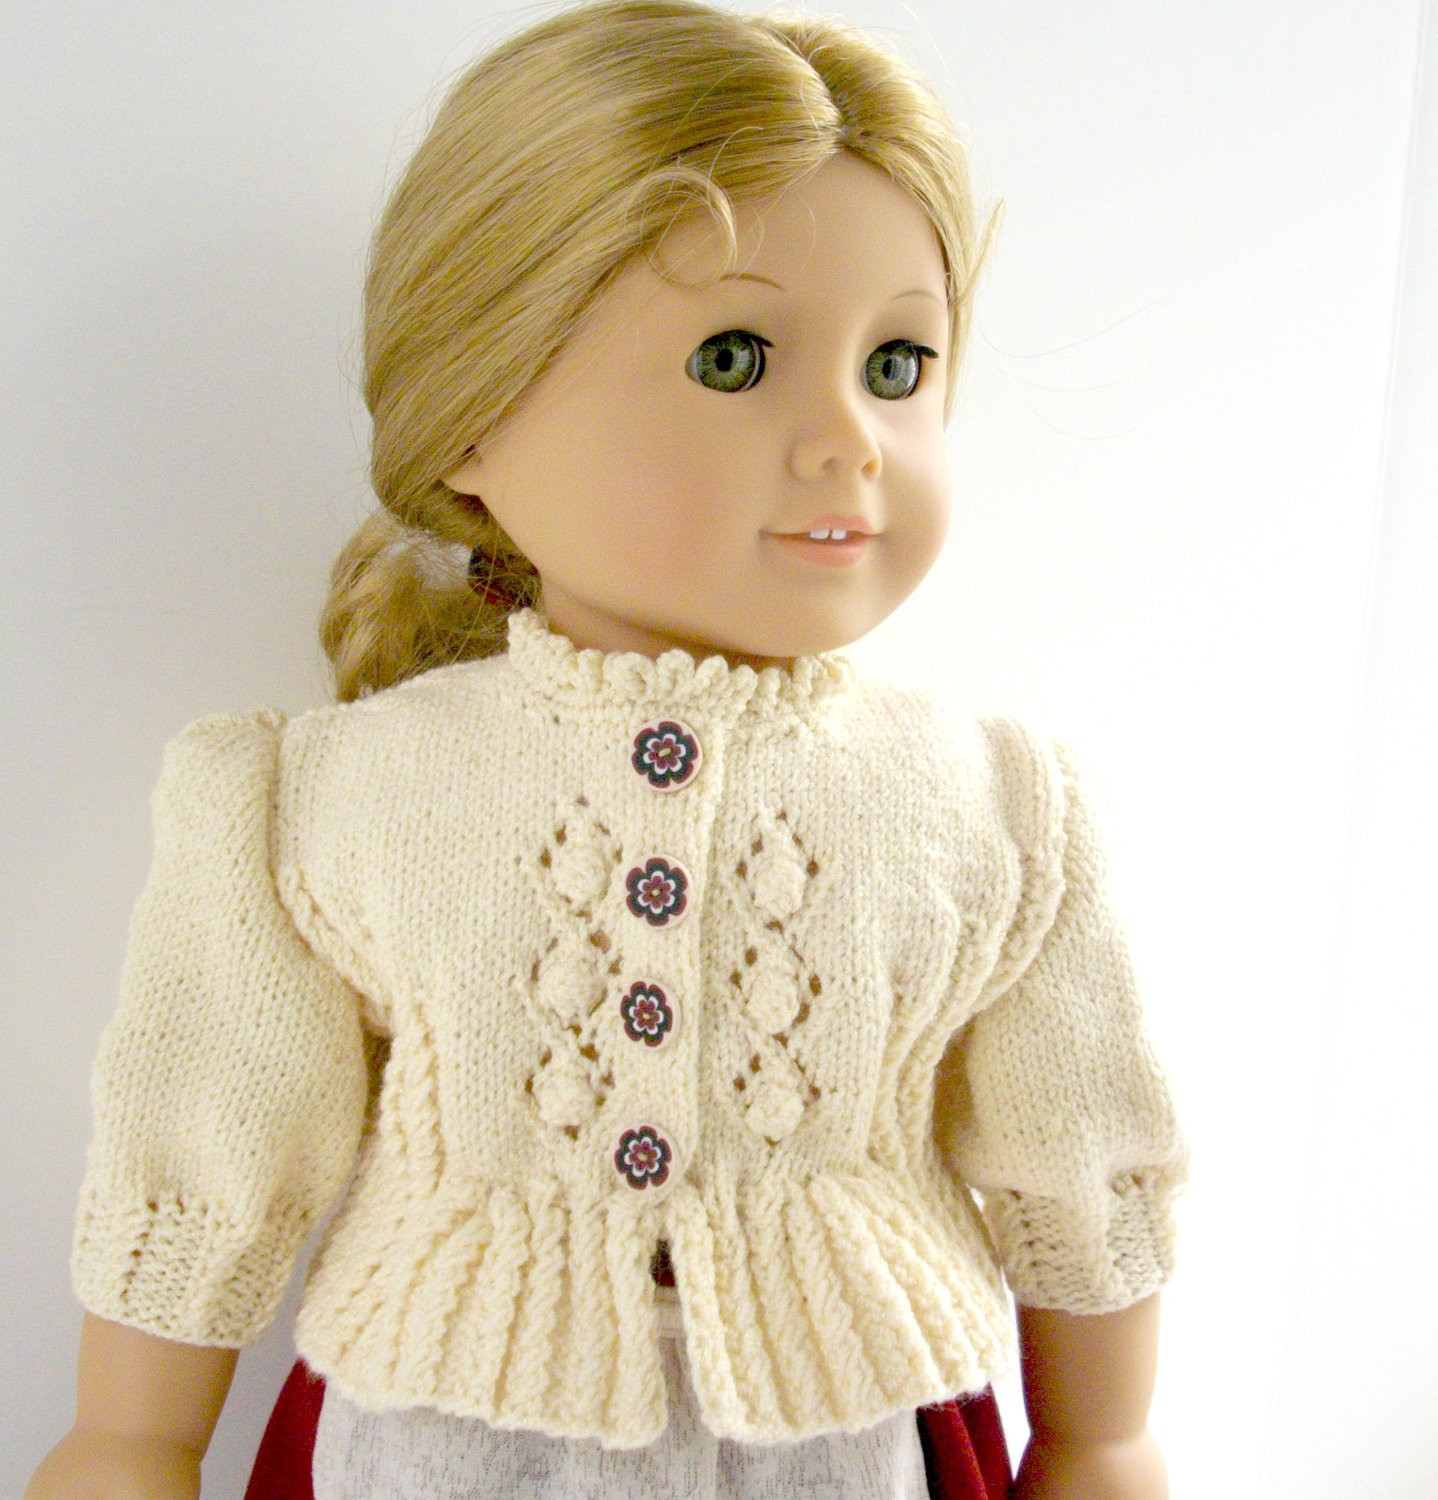 Doll Patterns Fresh American Girl Doll 18 Gotz Doll Knitting Pattern Folk Of Doll Patterns Best Of My Rag Doll Adorable Dolls to Sew